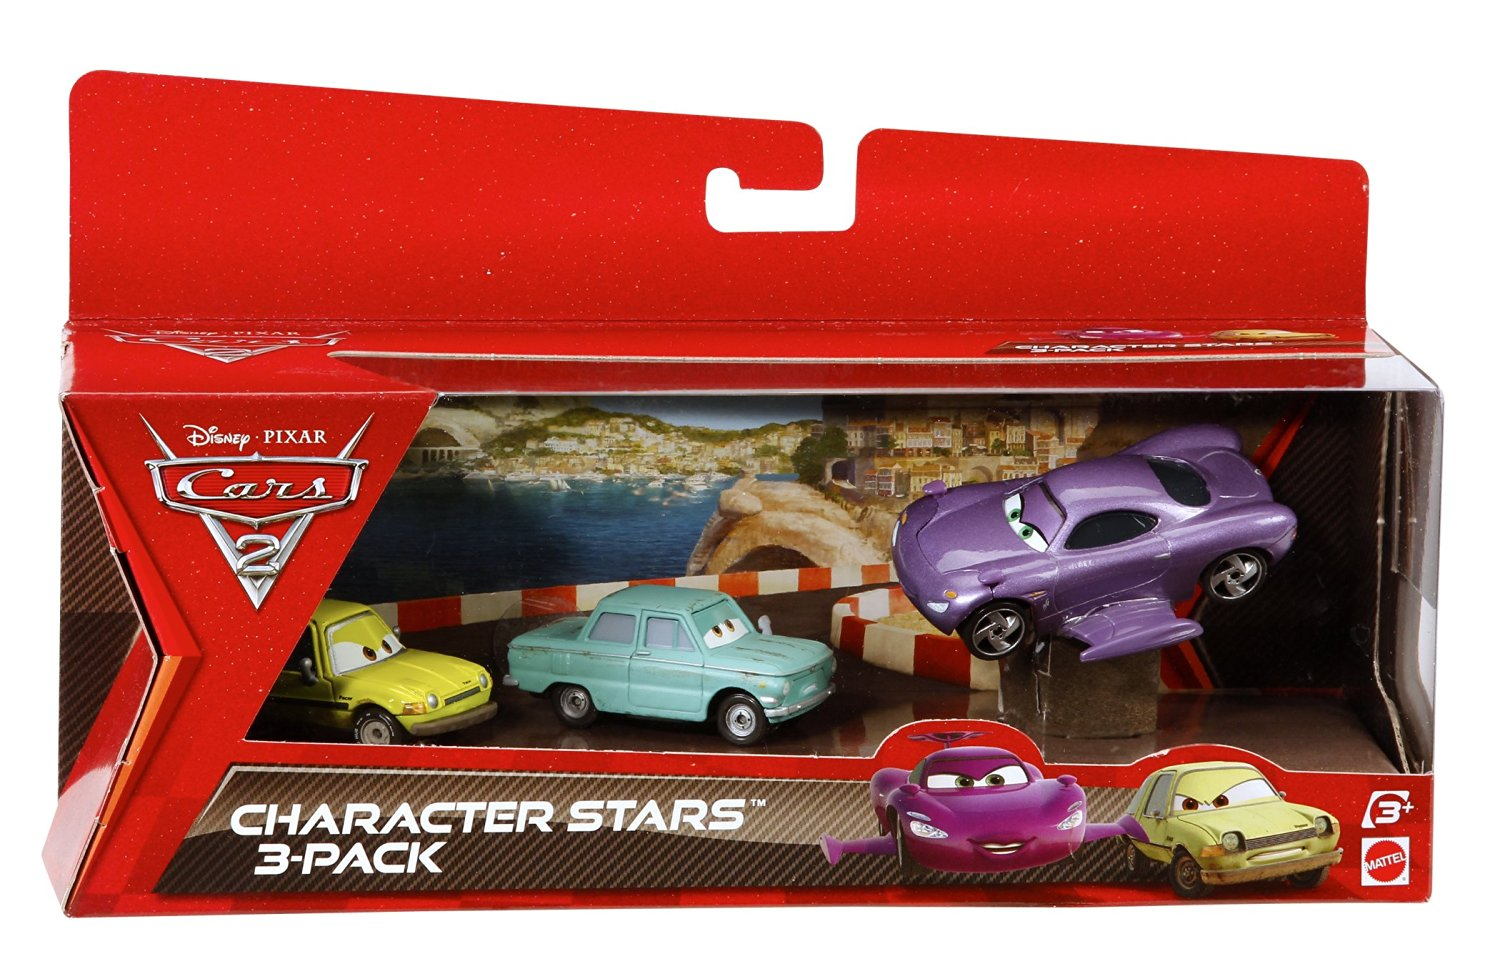 Cars 2 Collector Holly Shiftwell, Petrov Trunkov, and Acer Vehicle 3-Pack